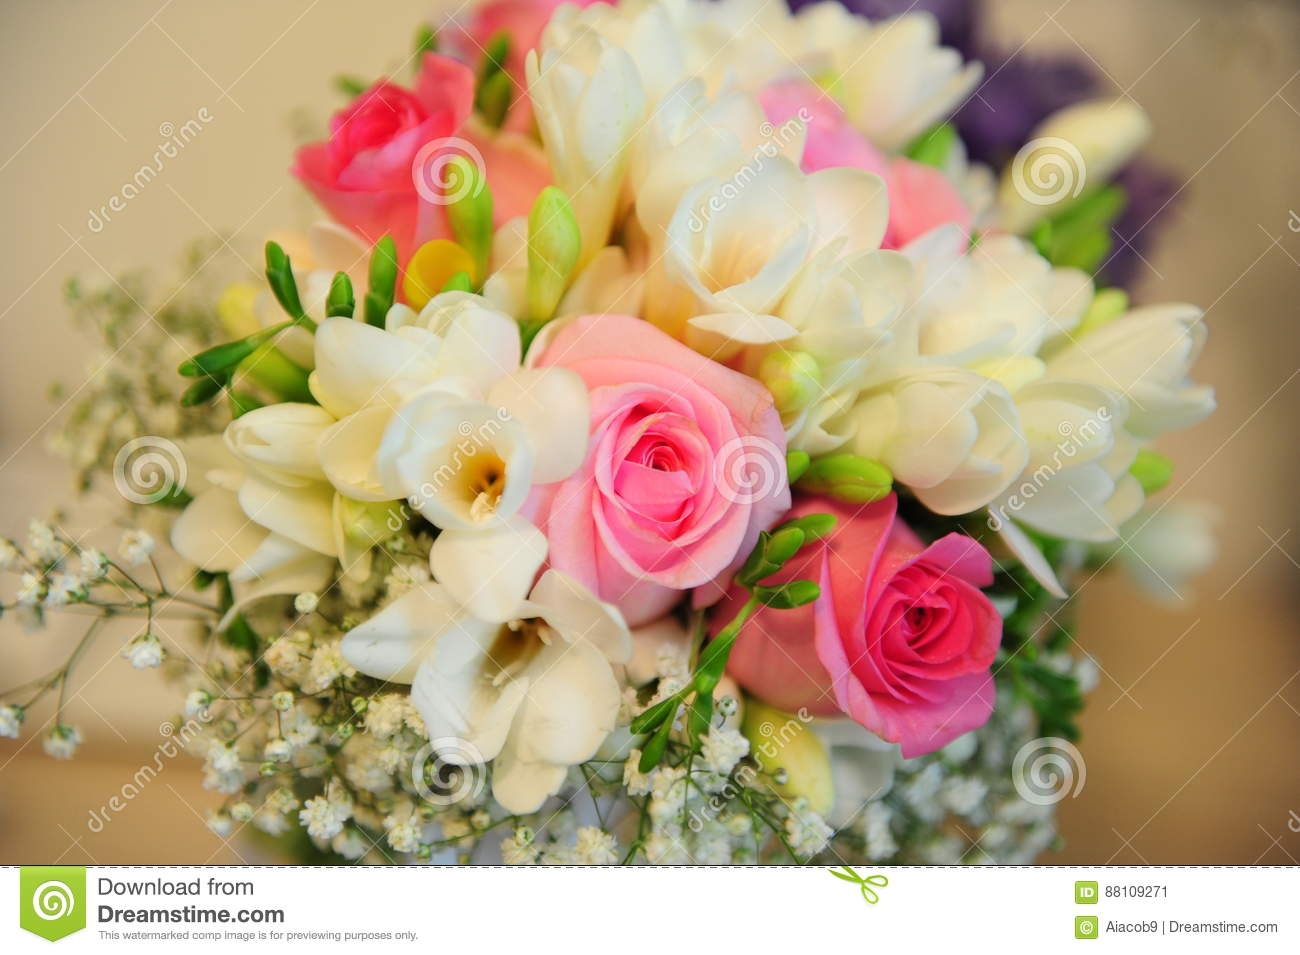 Vibrant Spring Wedding Bouquet Stock Image Image Of Design Dream